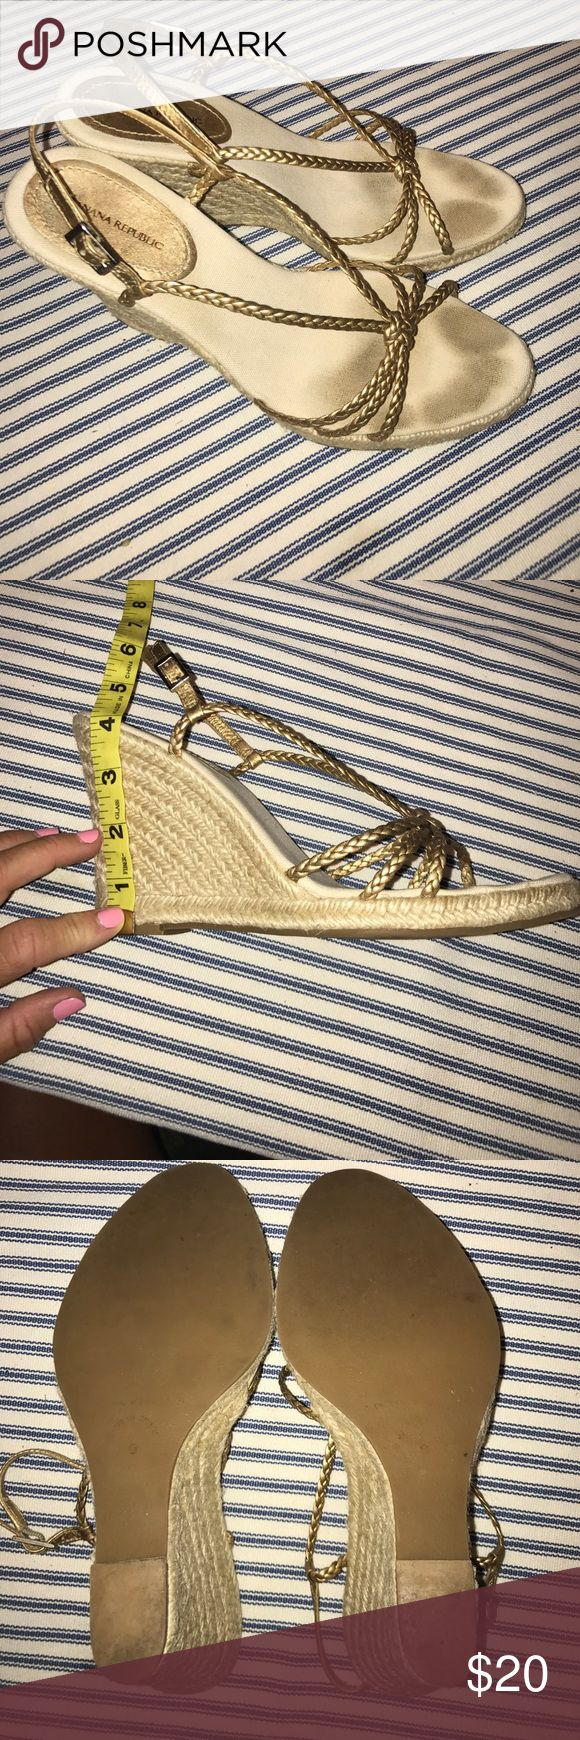 Banana Republic Gold Espadrille Wedge Sandals The perfect summer espadrilles! The braided gold straps are a perfect complement to shorts, skirts or dresses. The only evidence of wear is on the canvas footbed where there are toe markings. These may be able to be cleaned up, but the aren't noticeable when they on being worn. Banana Republic Shoes Espadrilles